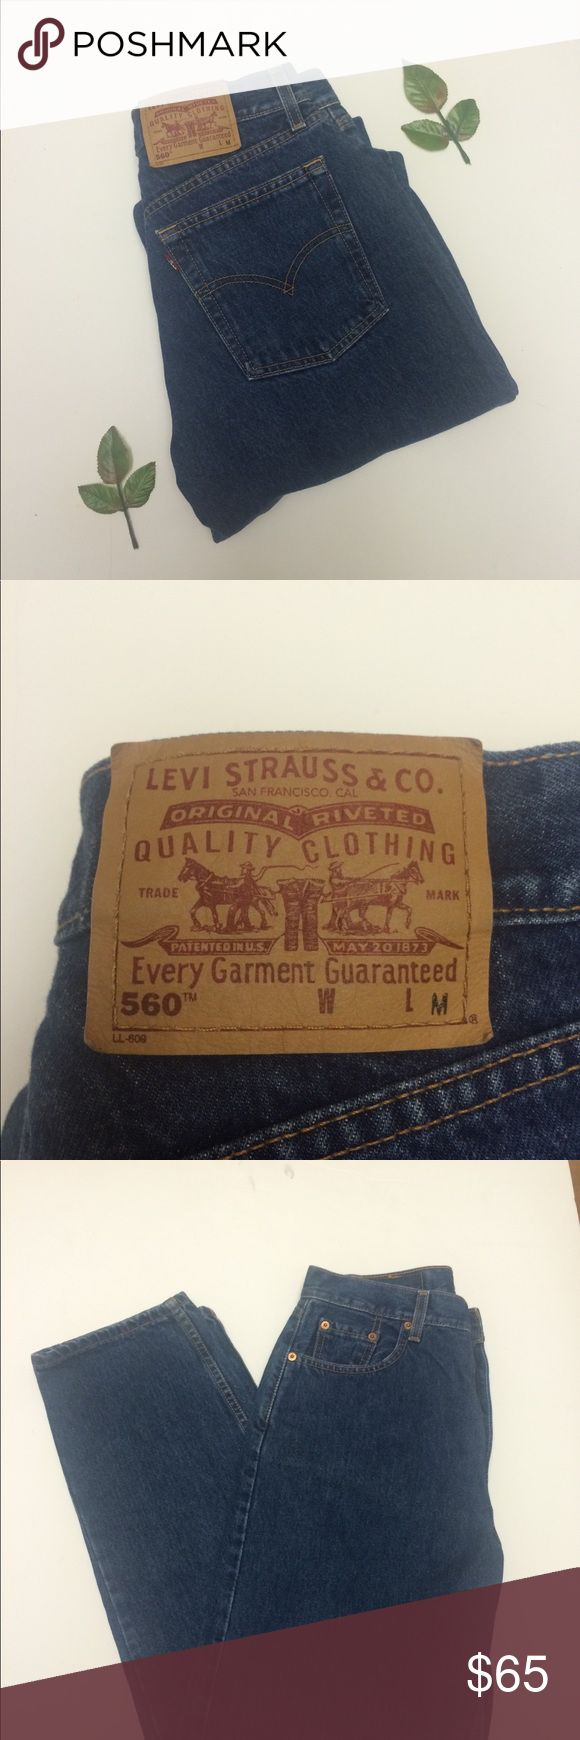 """Levi's 560 Vintage 90s Mom Jeans Levi's 560  Vintage 90s 'mom jeans'  Super high waisted  Size 10 = Size 30 (see screenshot of size chart)  Inseam: 31"""" Rise: 12""""  These are immaculate; no wear to hems or seat! Super on trend for fall 💕 Levi's Jeans Straight Leg"""